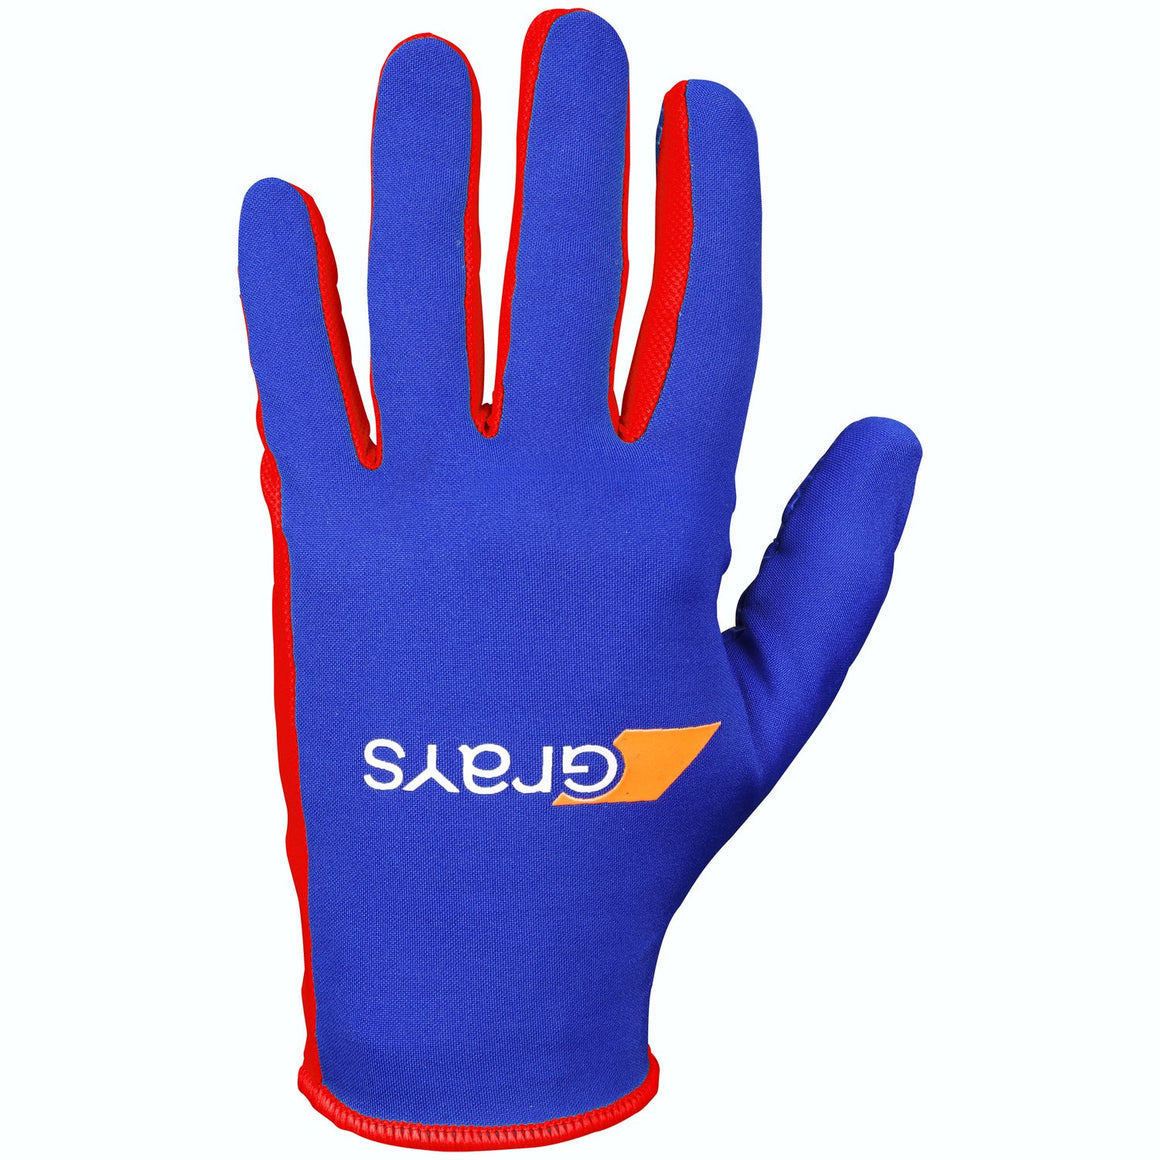 Skinful Gloves in Royal & Red